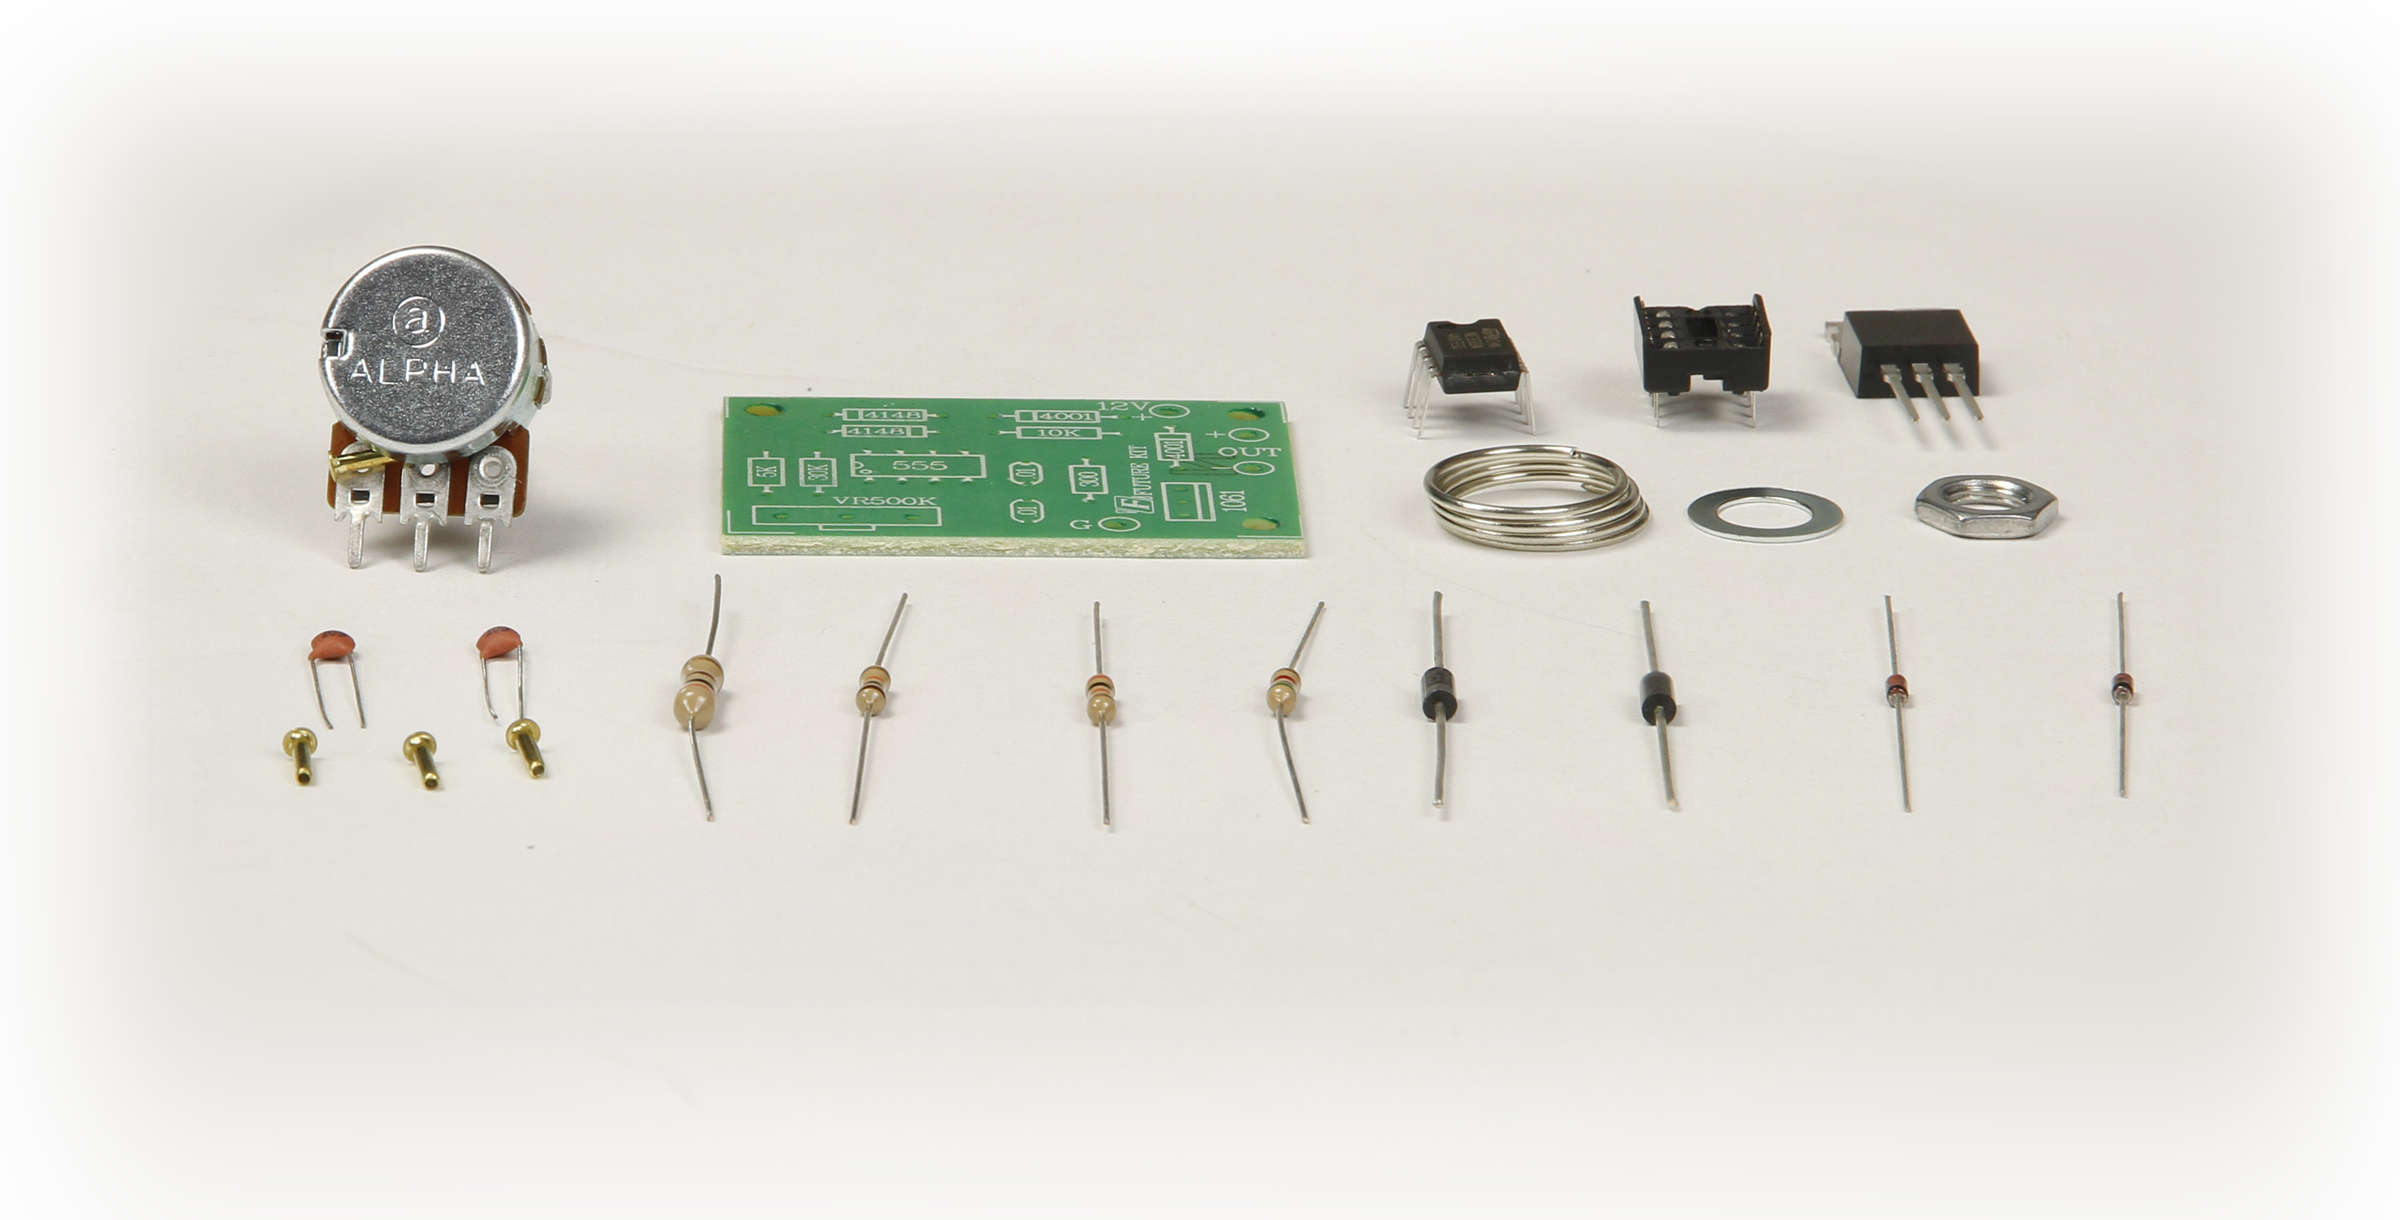 Gsk 804 Pwm Dc Motor Speed Control Kit Electronic Controller Circuit Global Specialties Photo